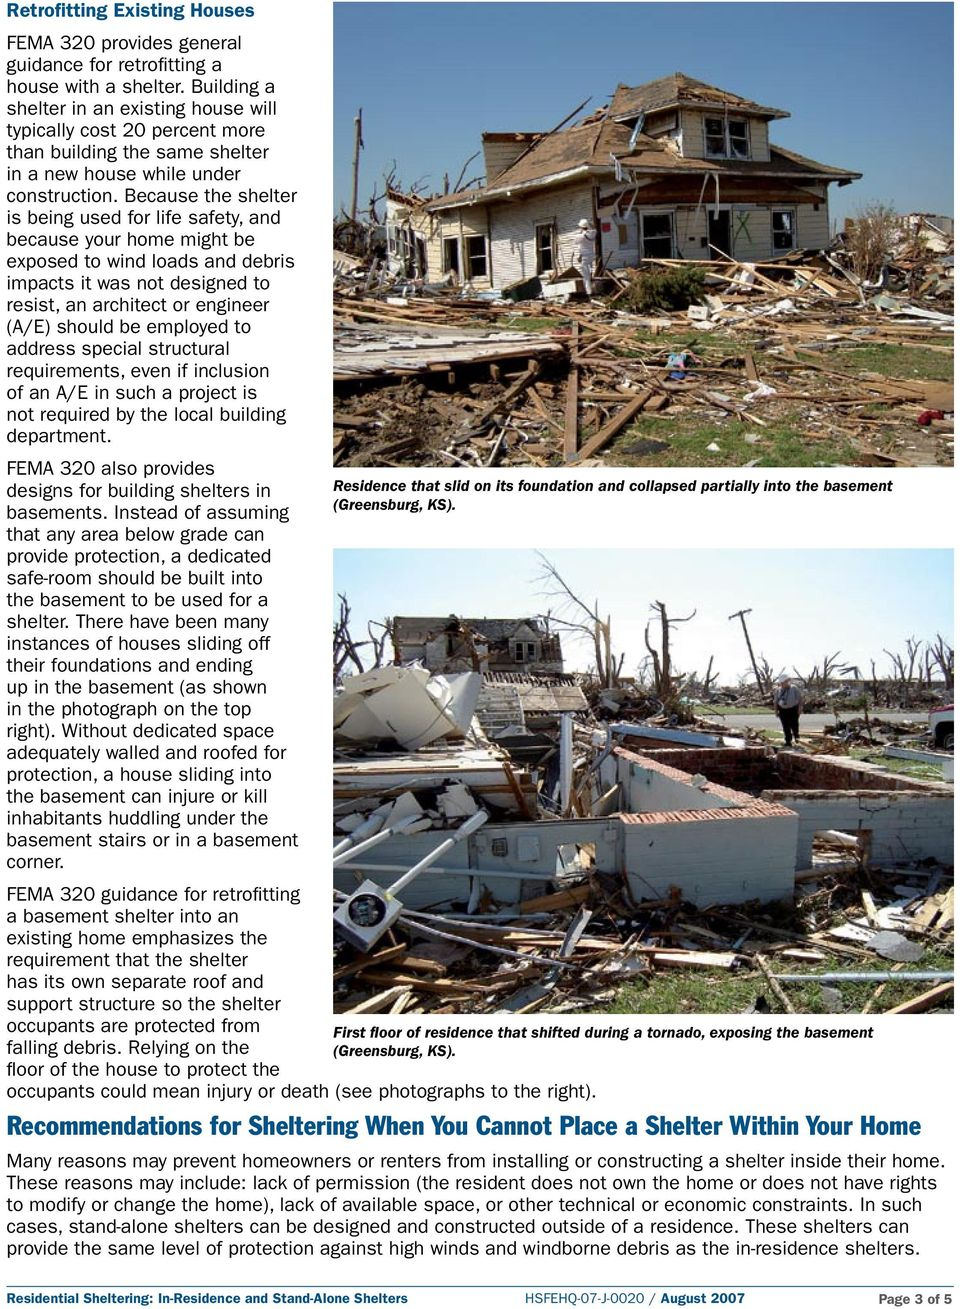 Because the shelter is being used for life safety, and because your home might be exposed to wind loads and debris impacts it was not designed to resist, an architect or engineer (A/E) should be